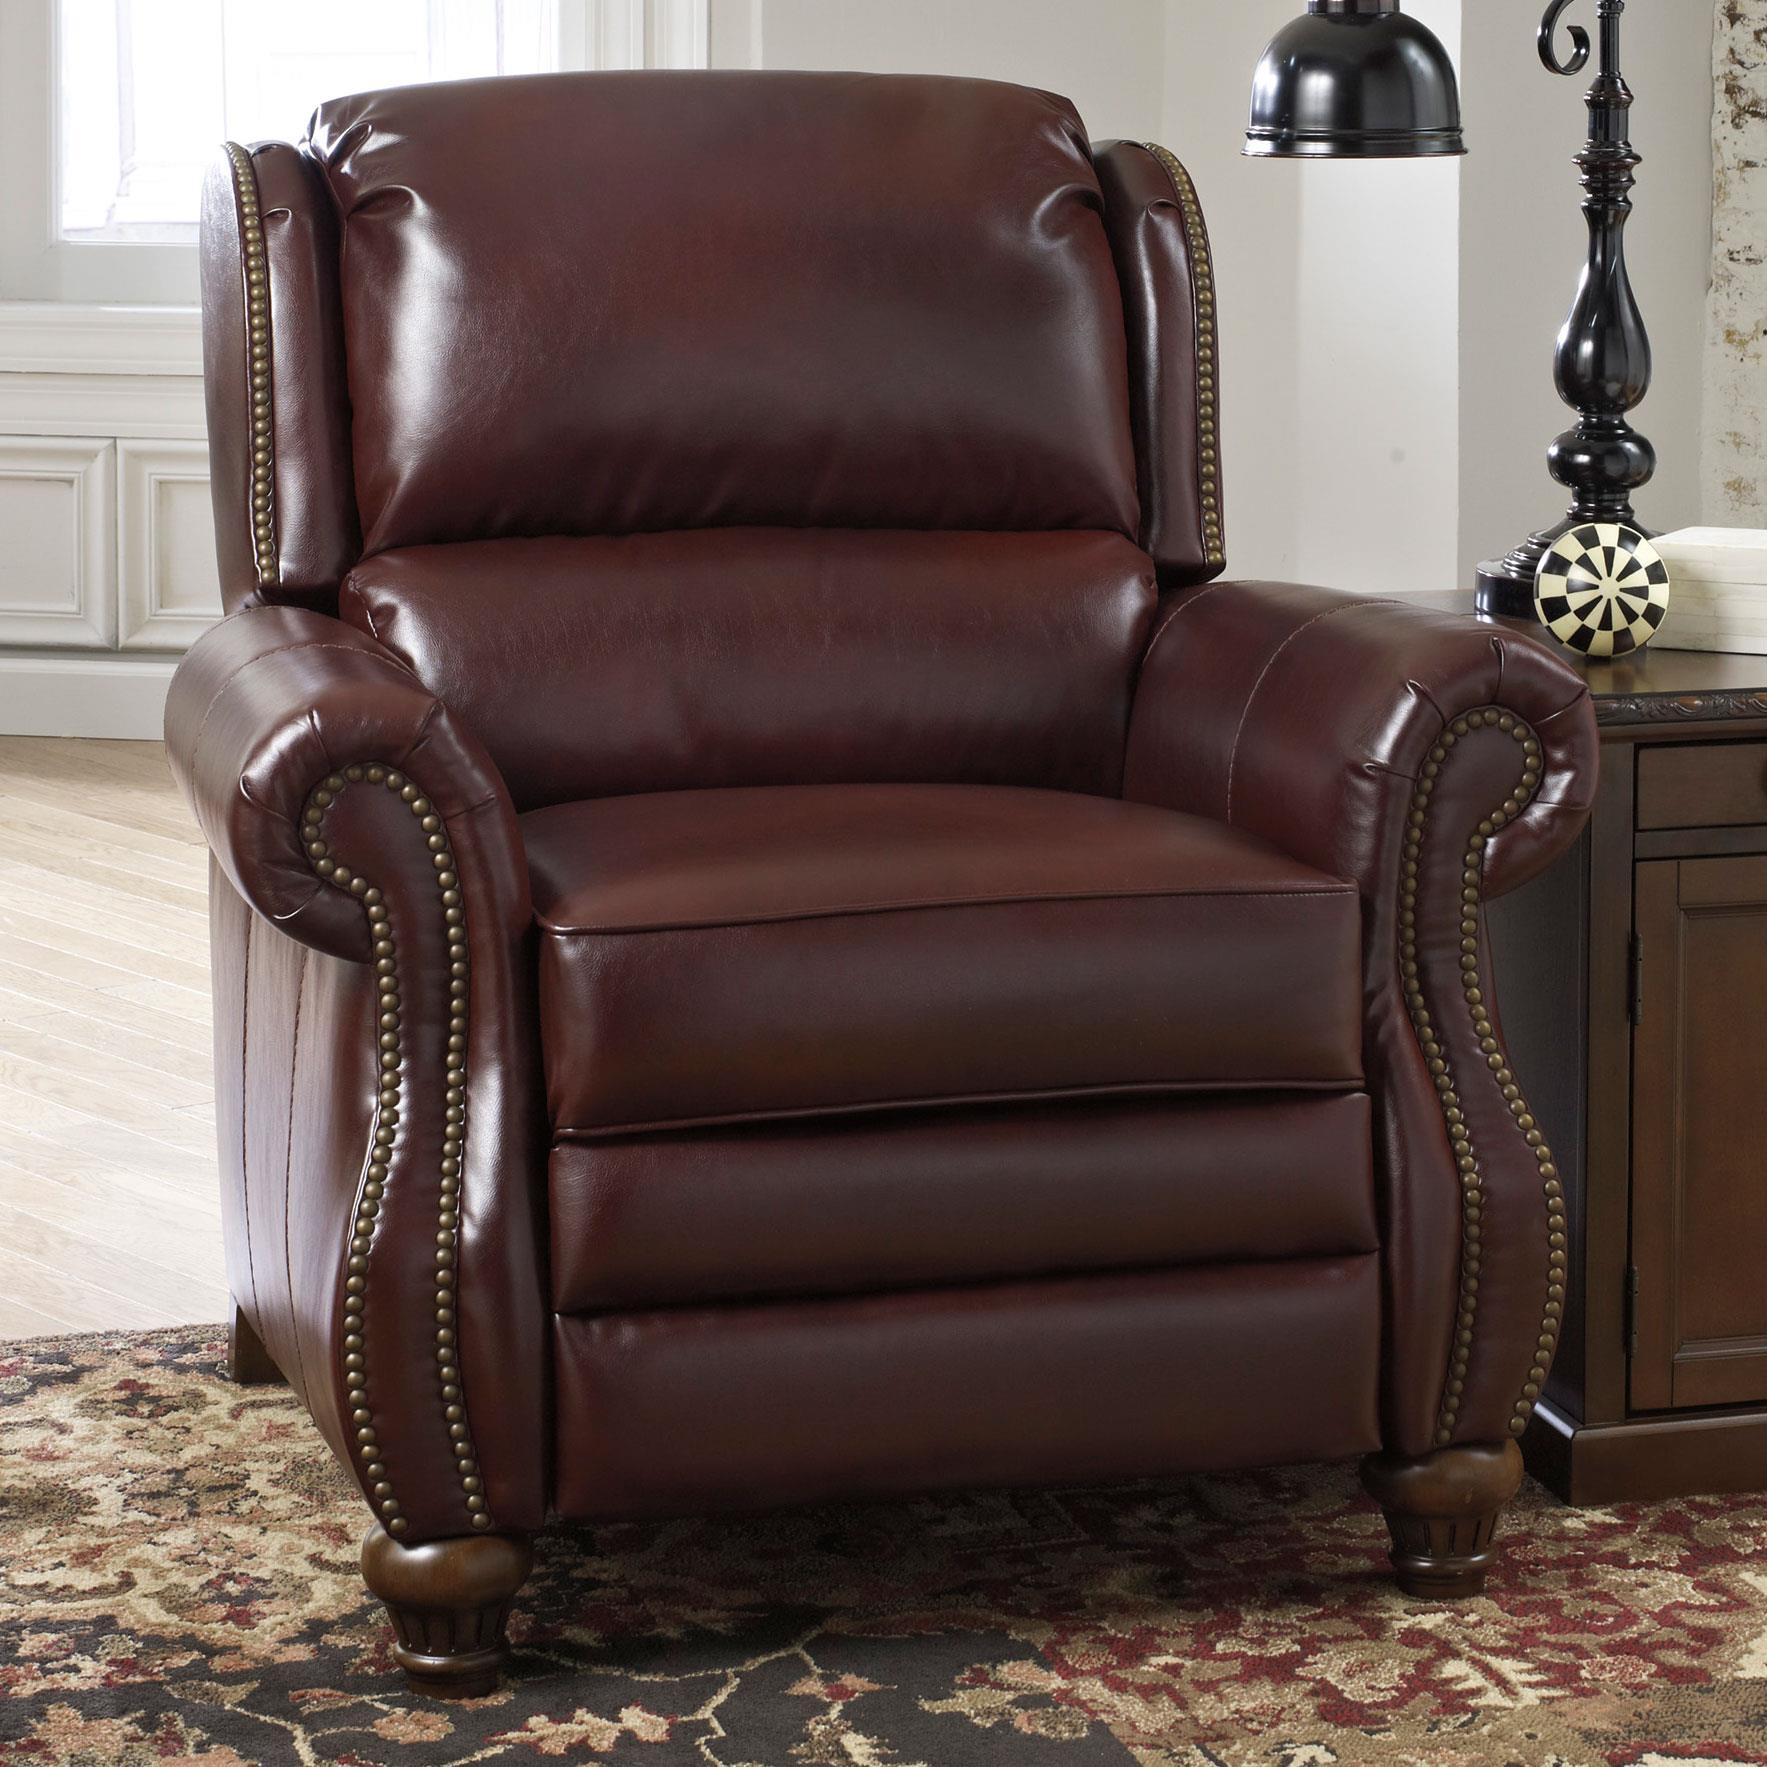 Signature Design by Ashley Elberton DuraBlend® Low Leg Recliner - Item Number: 2060130